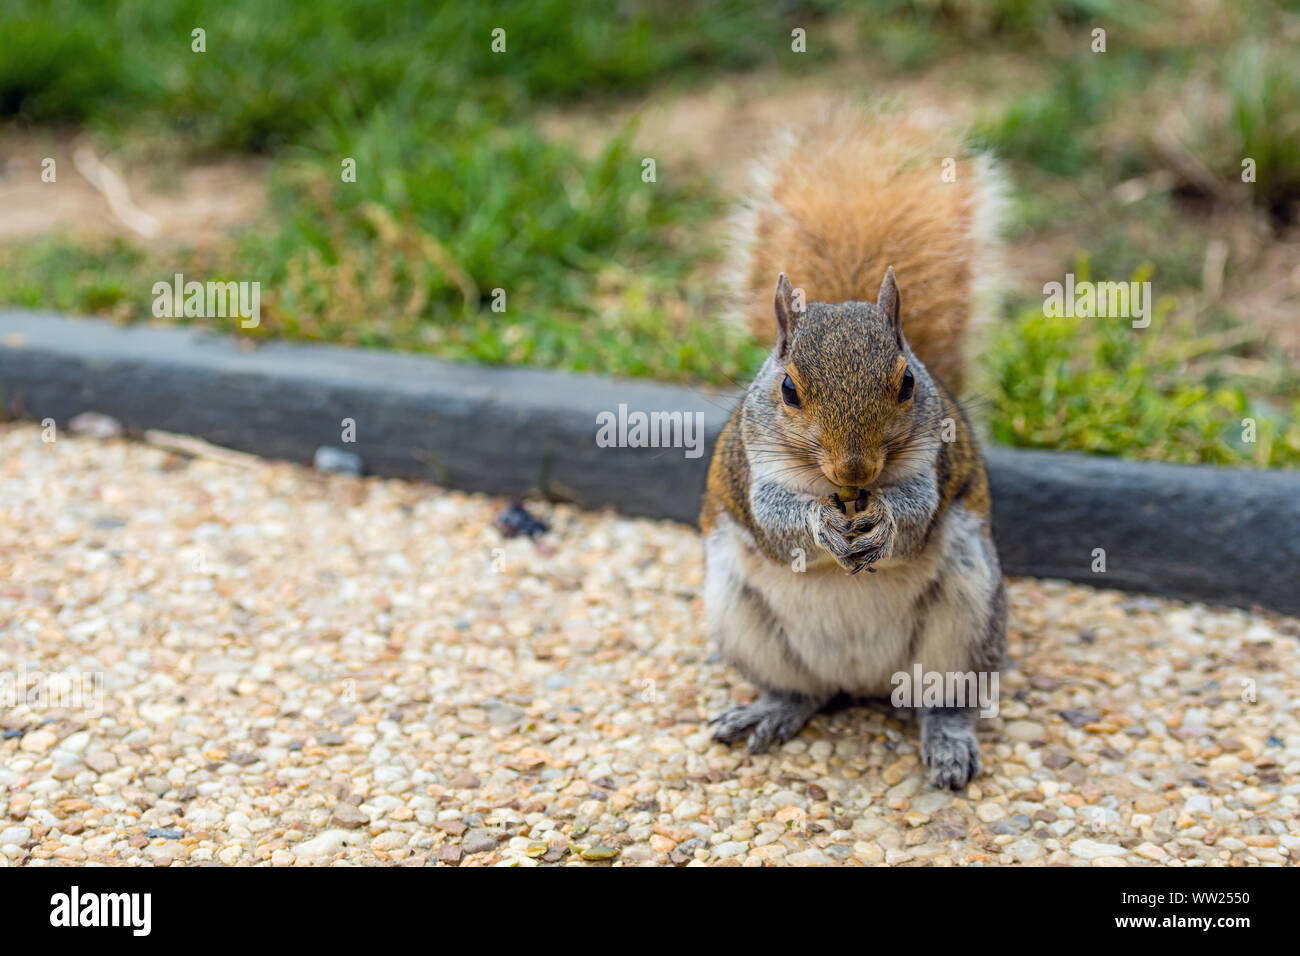 A squirrel in a park at Capitol Hill Grounds Stock Photo